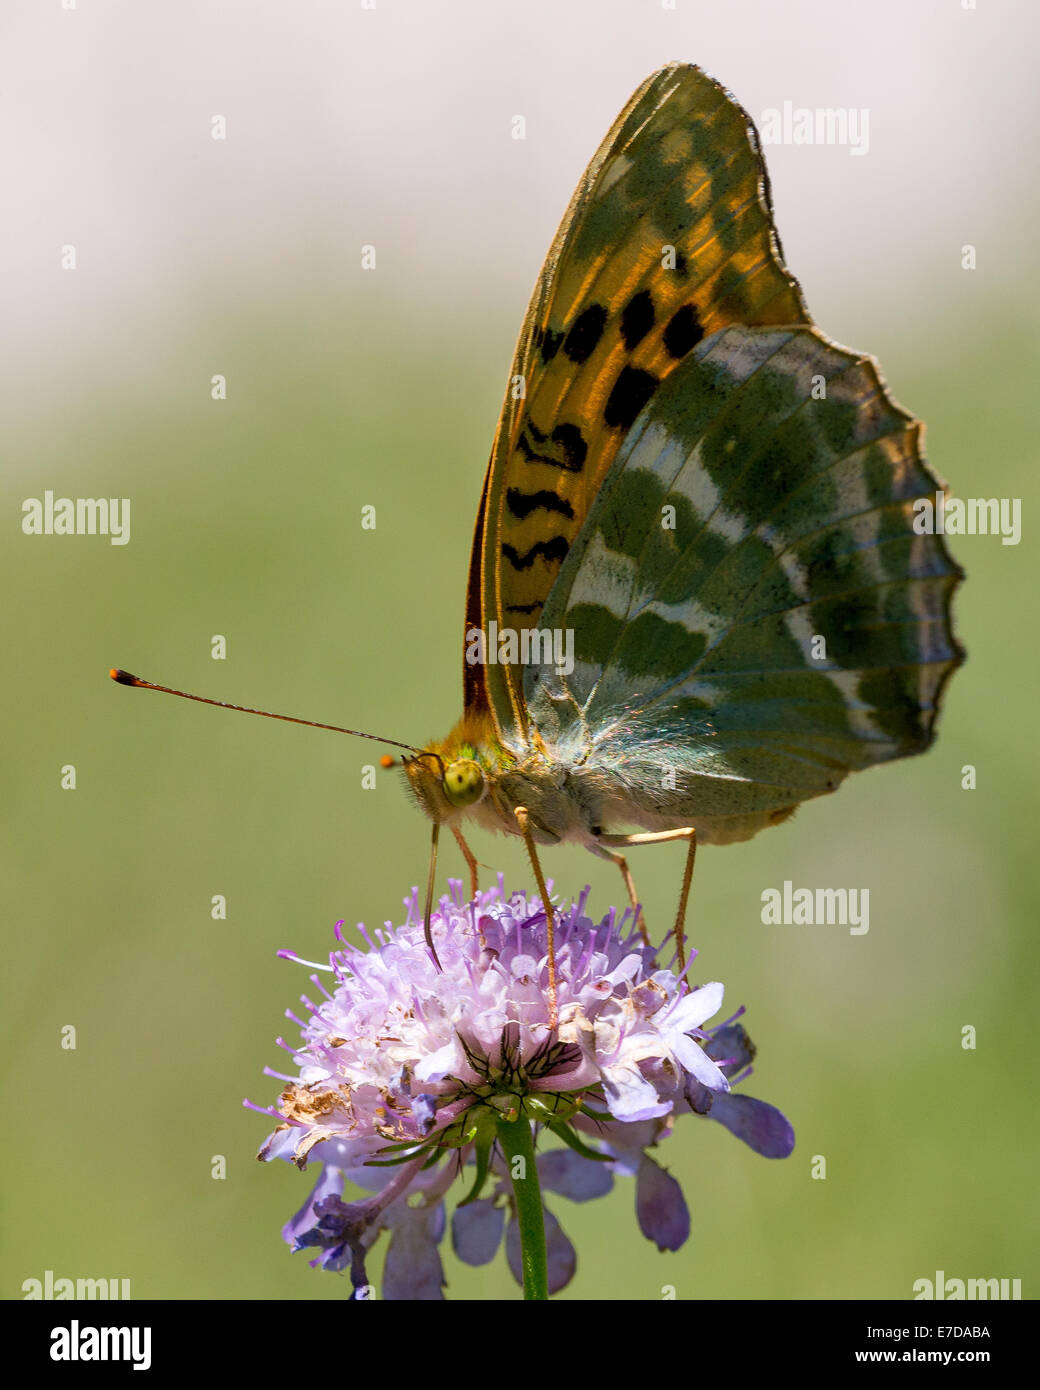 A Silver-washed Fritillary butterfly (Argynnis paphia) nectaring in afternoon sun on scabious in the Combe de Caray - Stock Image